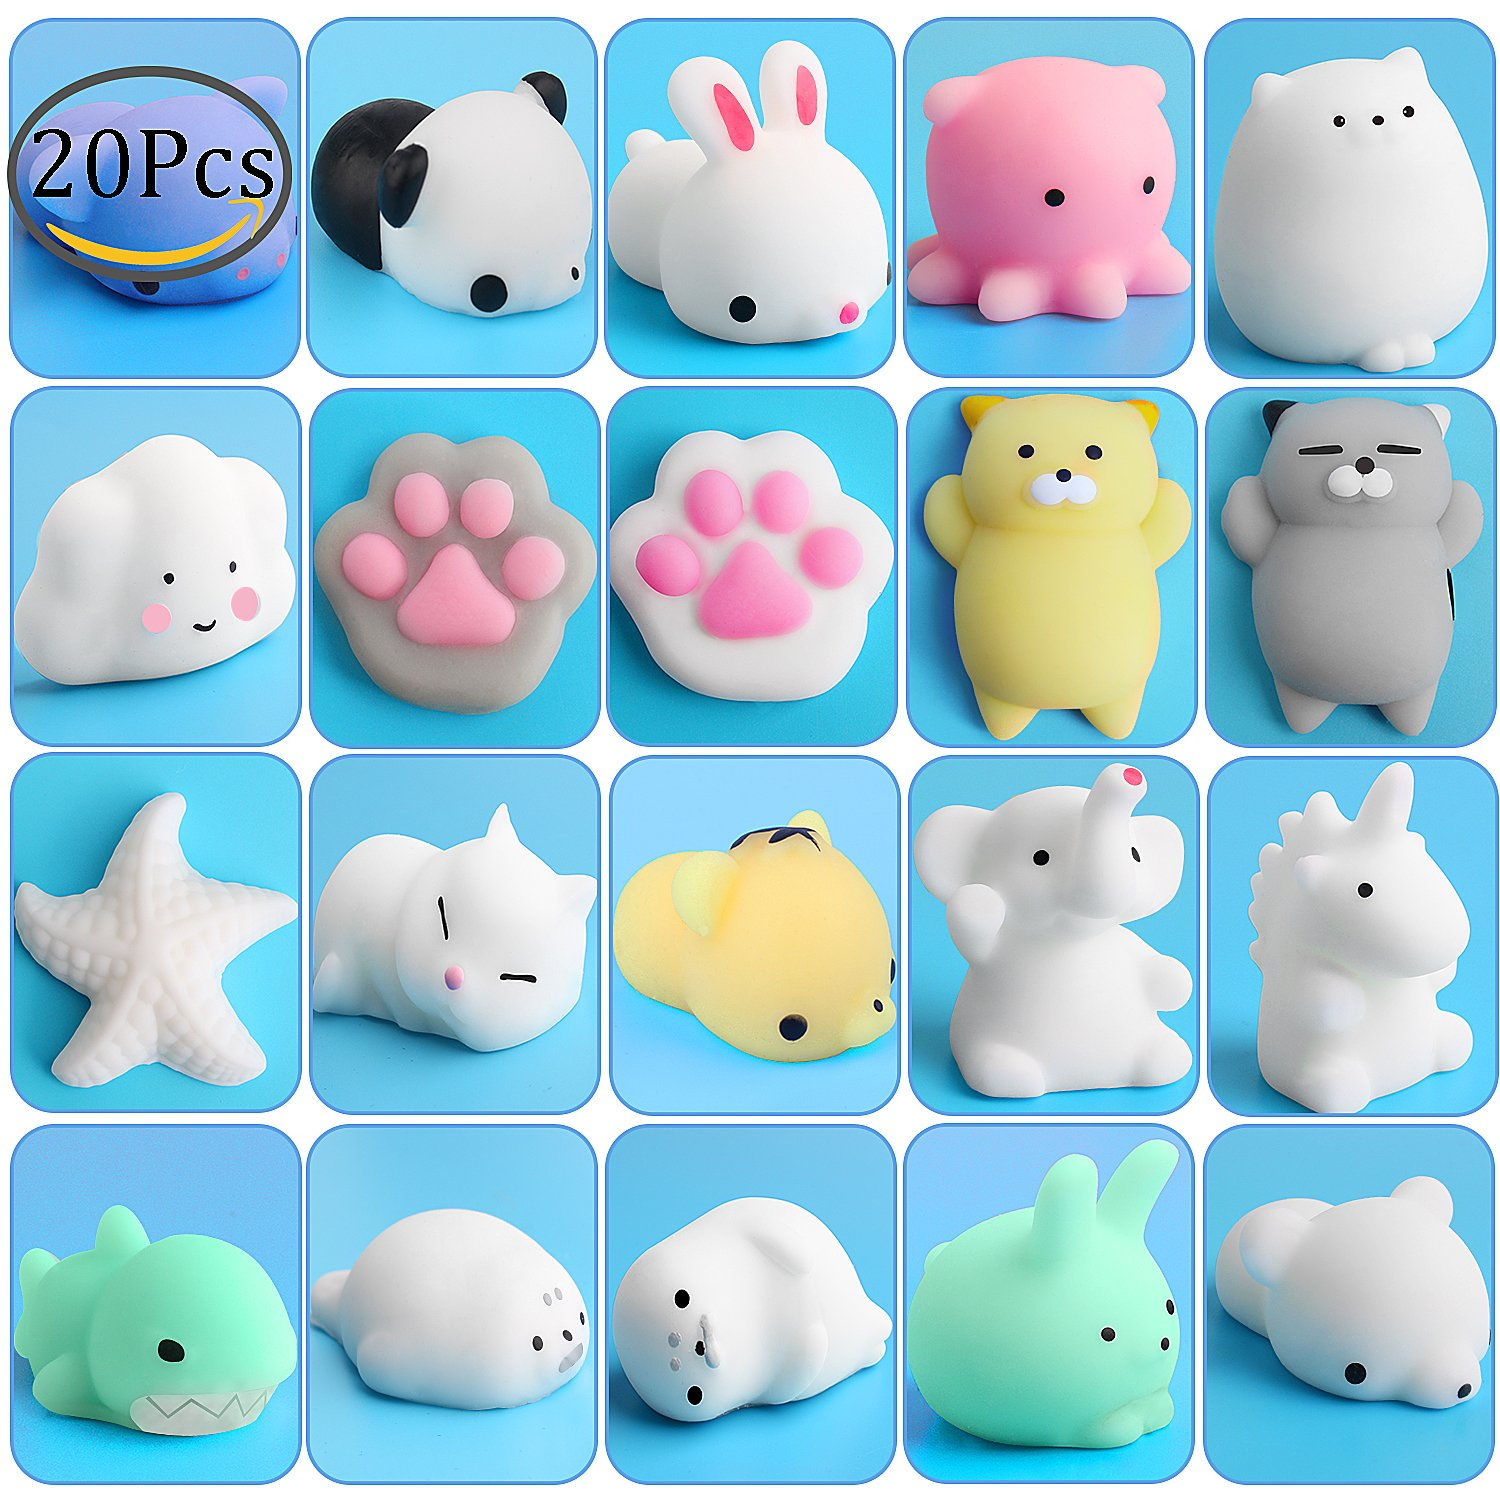 Giocattoli Animali squishy, Outee 20 Pezzi Mochi Squishy Cat Toy Mochi Squeeze Squishy Kawaii Cat Squishy Giocattoli per Animali Antistress Giocattolo Mochi Squishies All'orso Kawaii